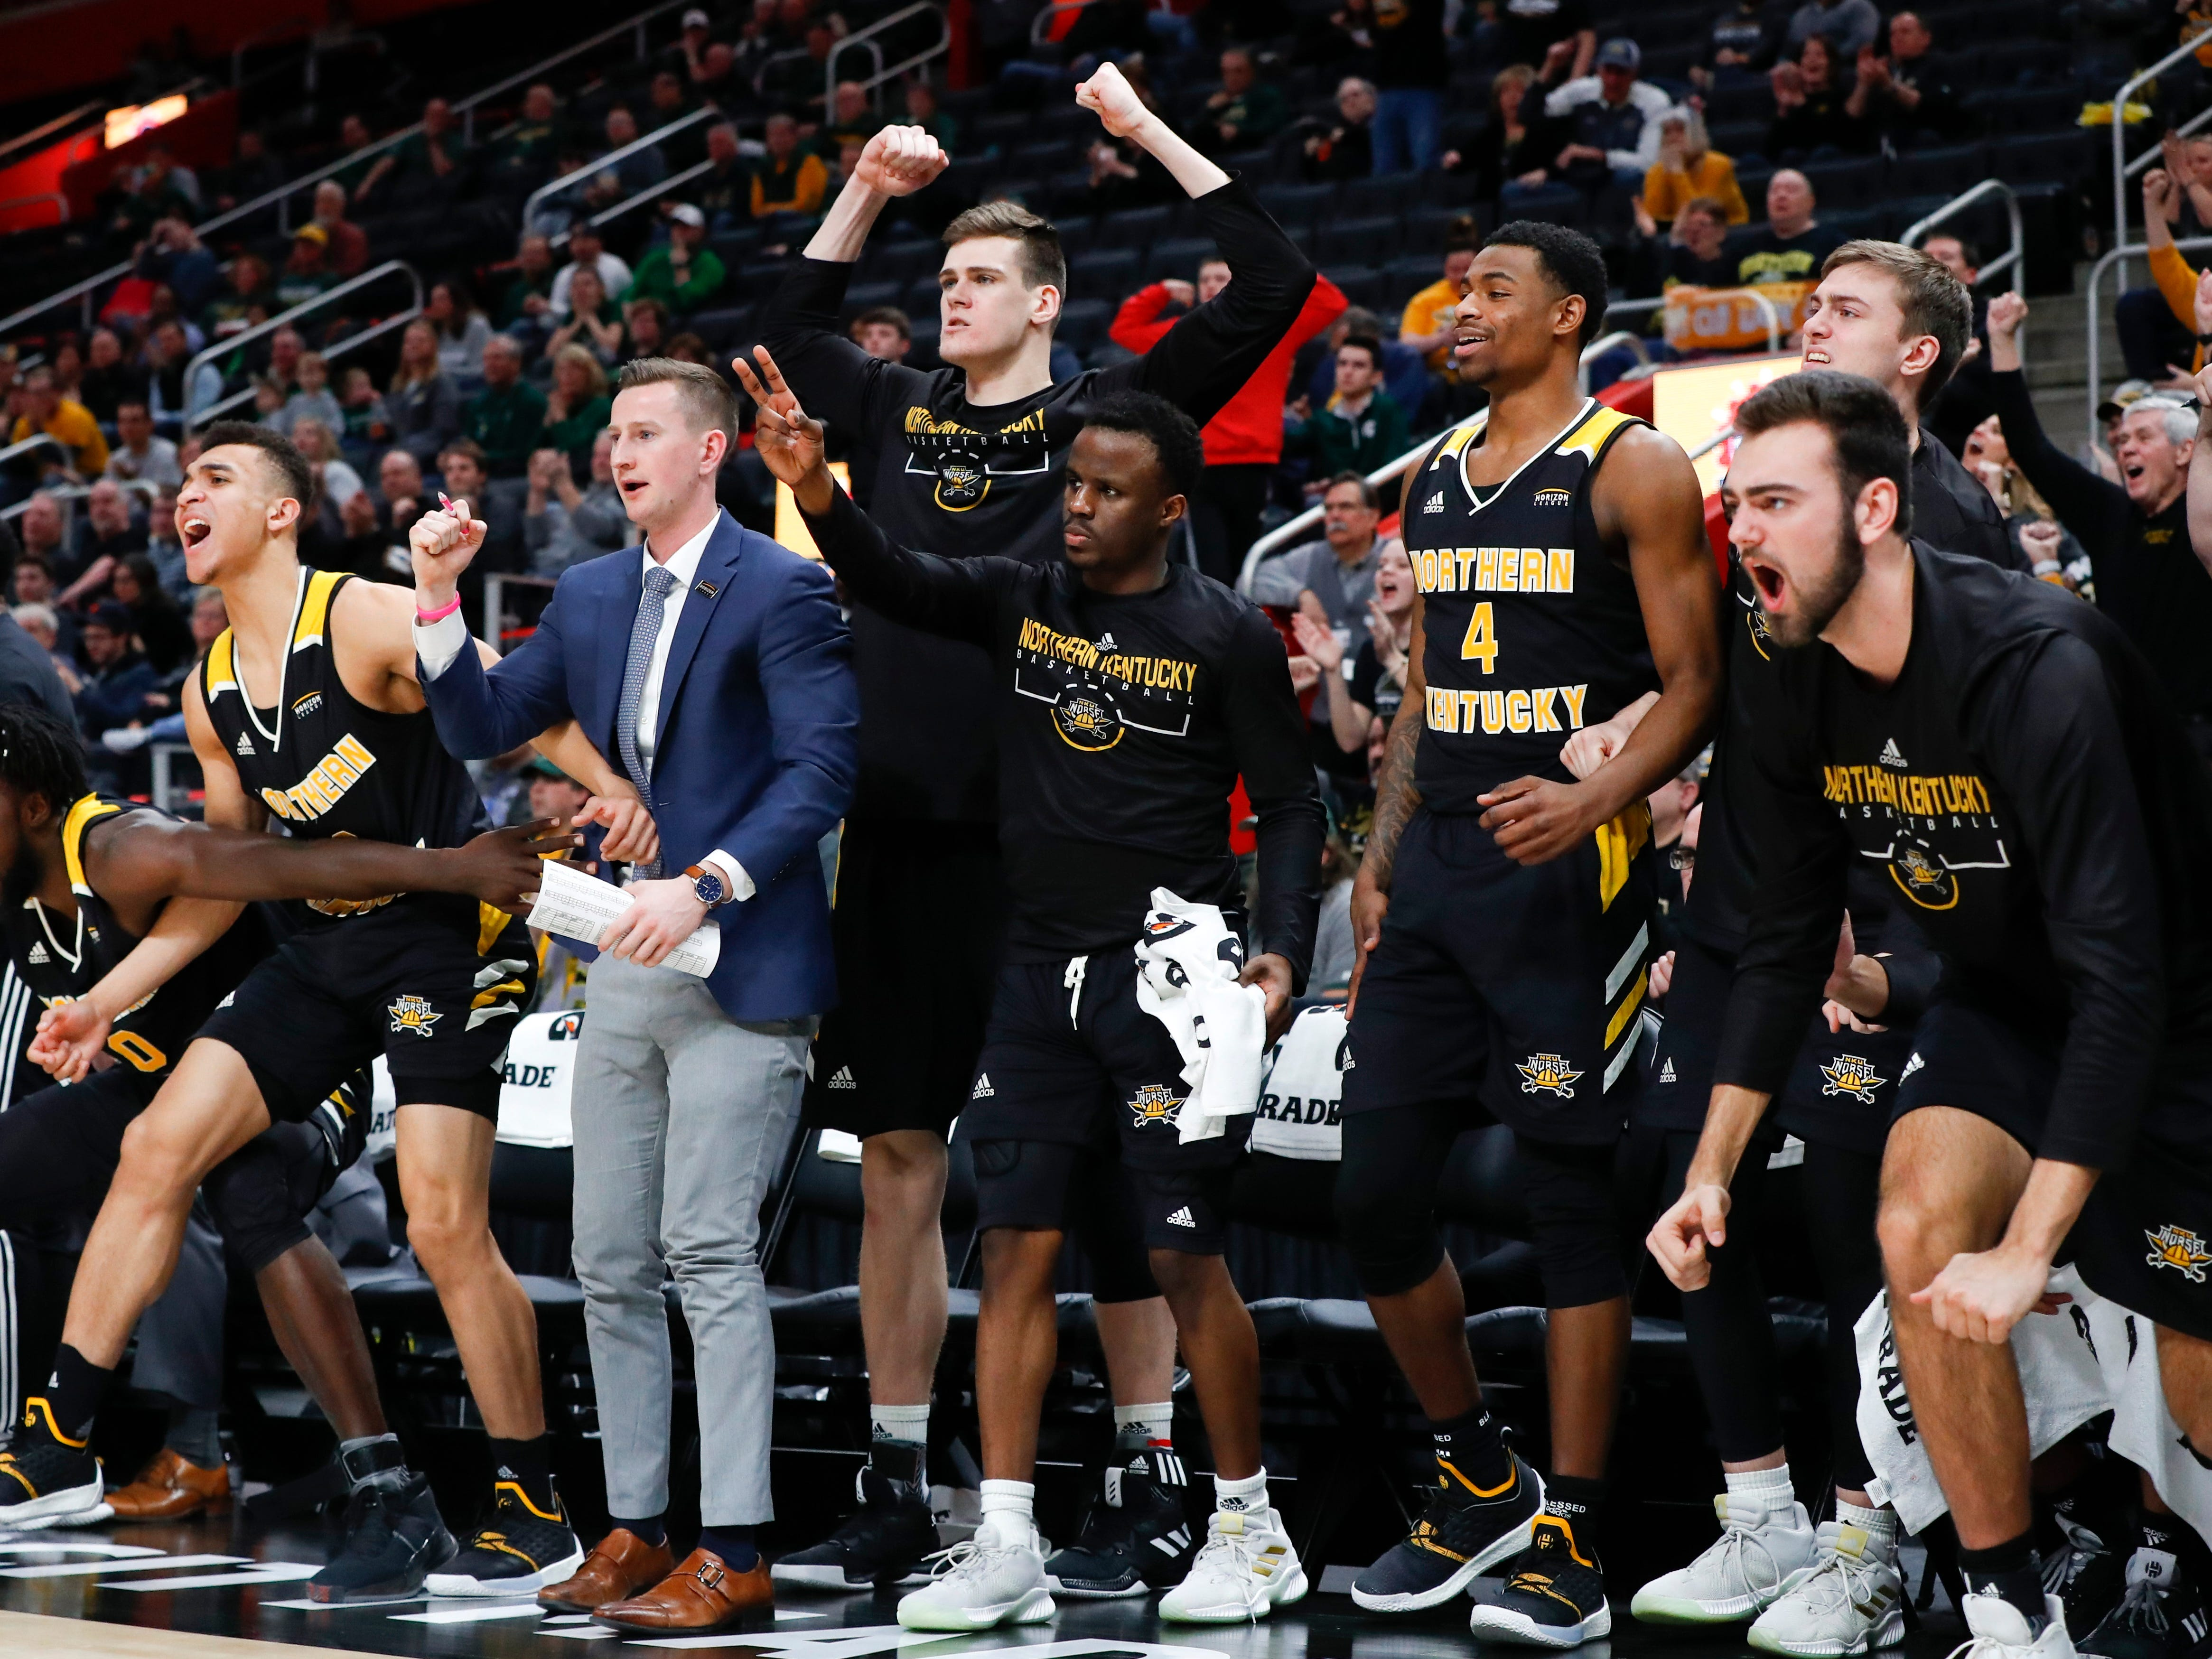 Northern Kentucky players celebrate a basket against Wright State during the second half of an NCAA college basketball game for the Horizon League men's tournament championship in Detroit, Tuesday, March 12, 2019.